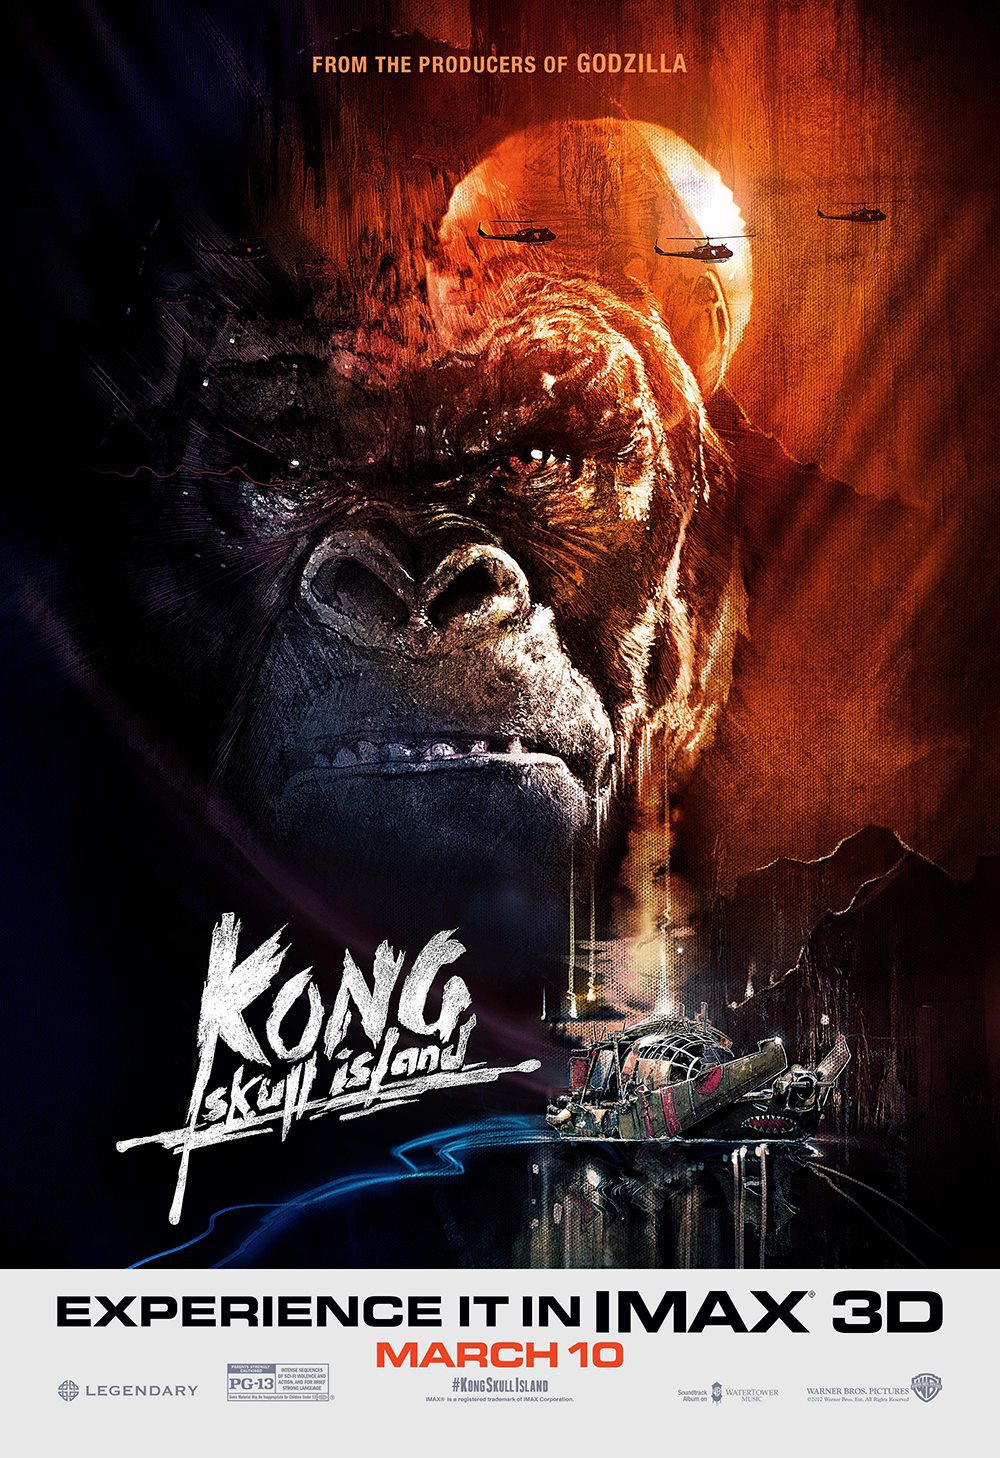 Extra Large Movie Poster Image for Kong: Skull Island (#7 of 21)